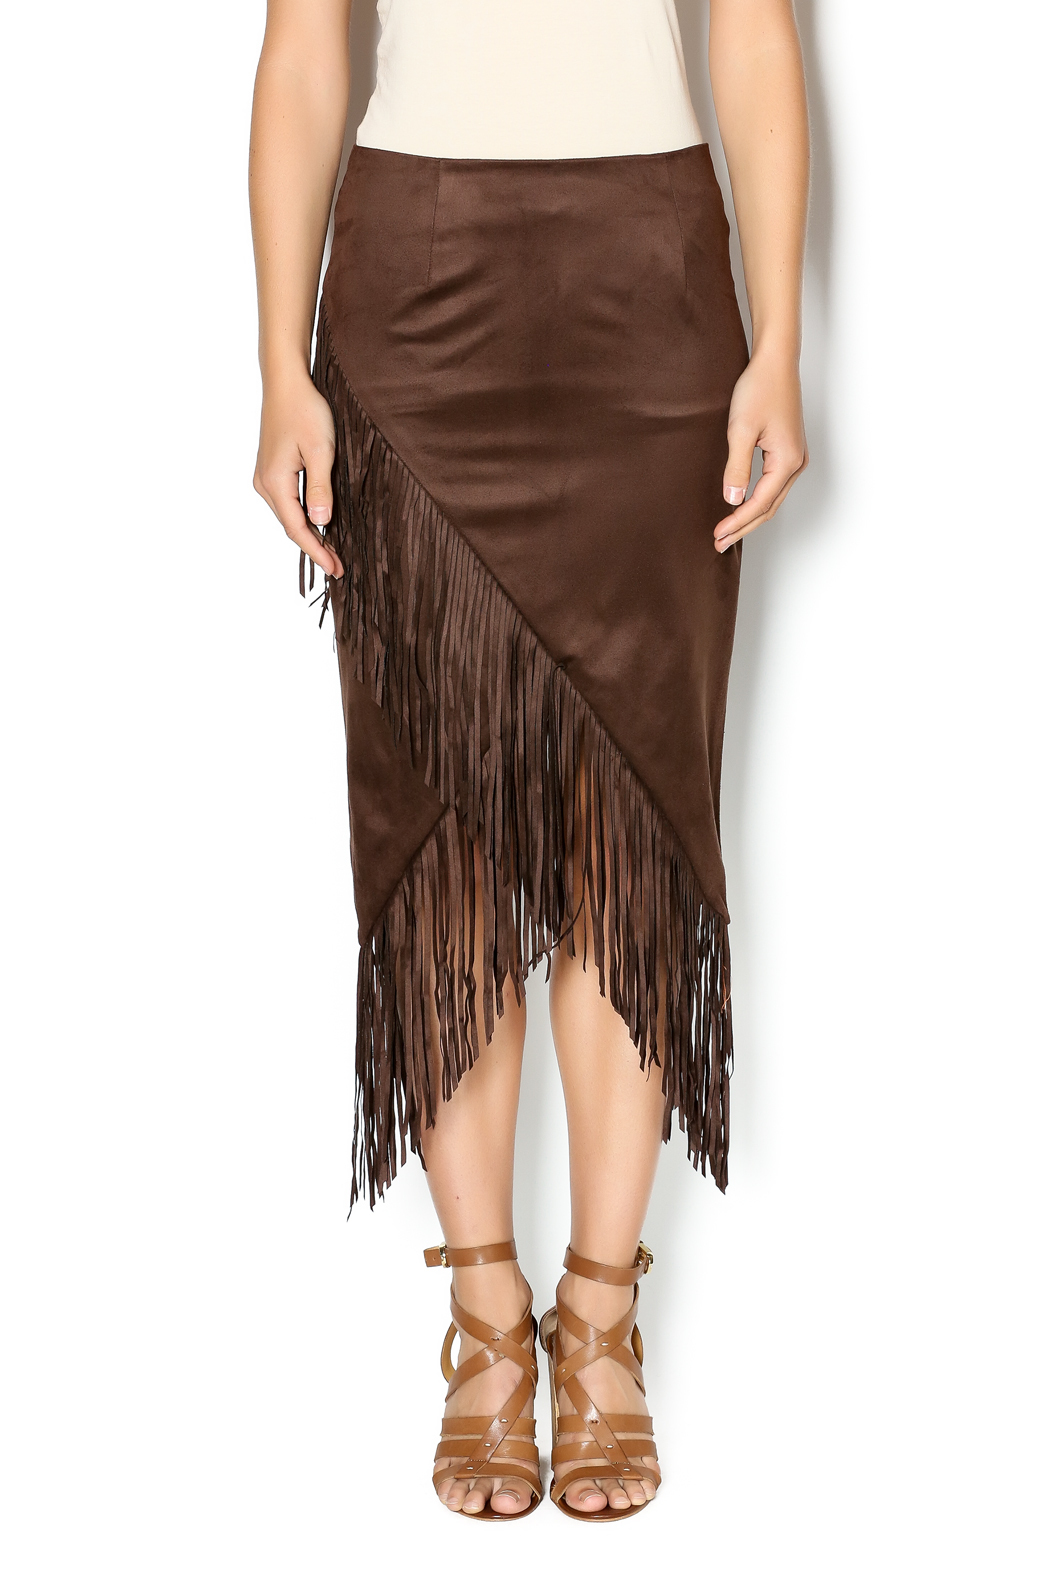 Olivaceous Faux Suede Fringe Skirt From North Shore By